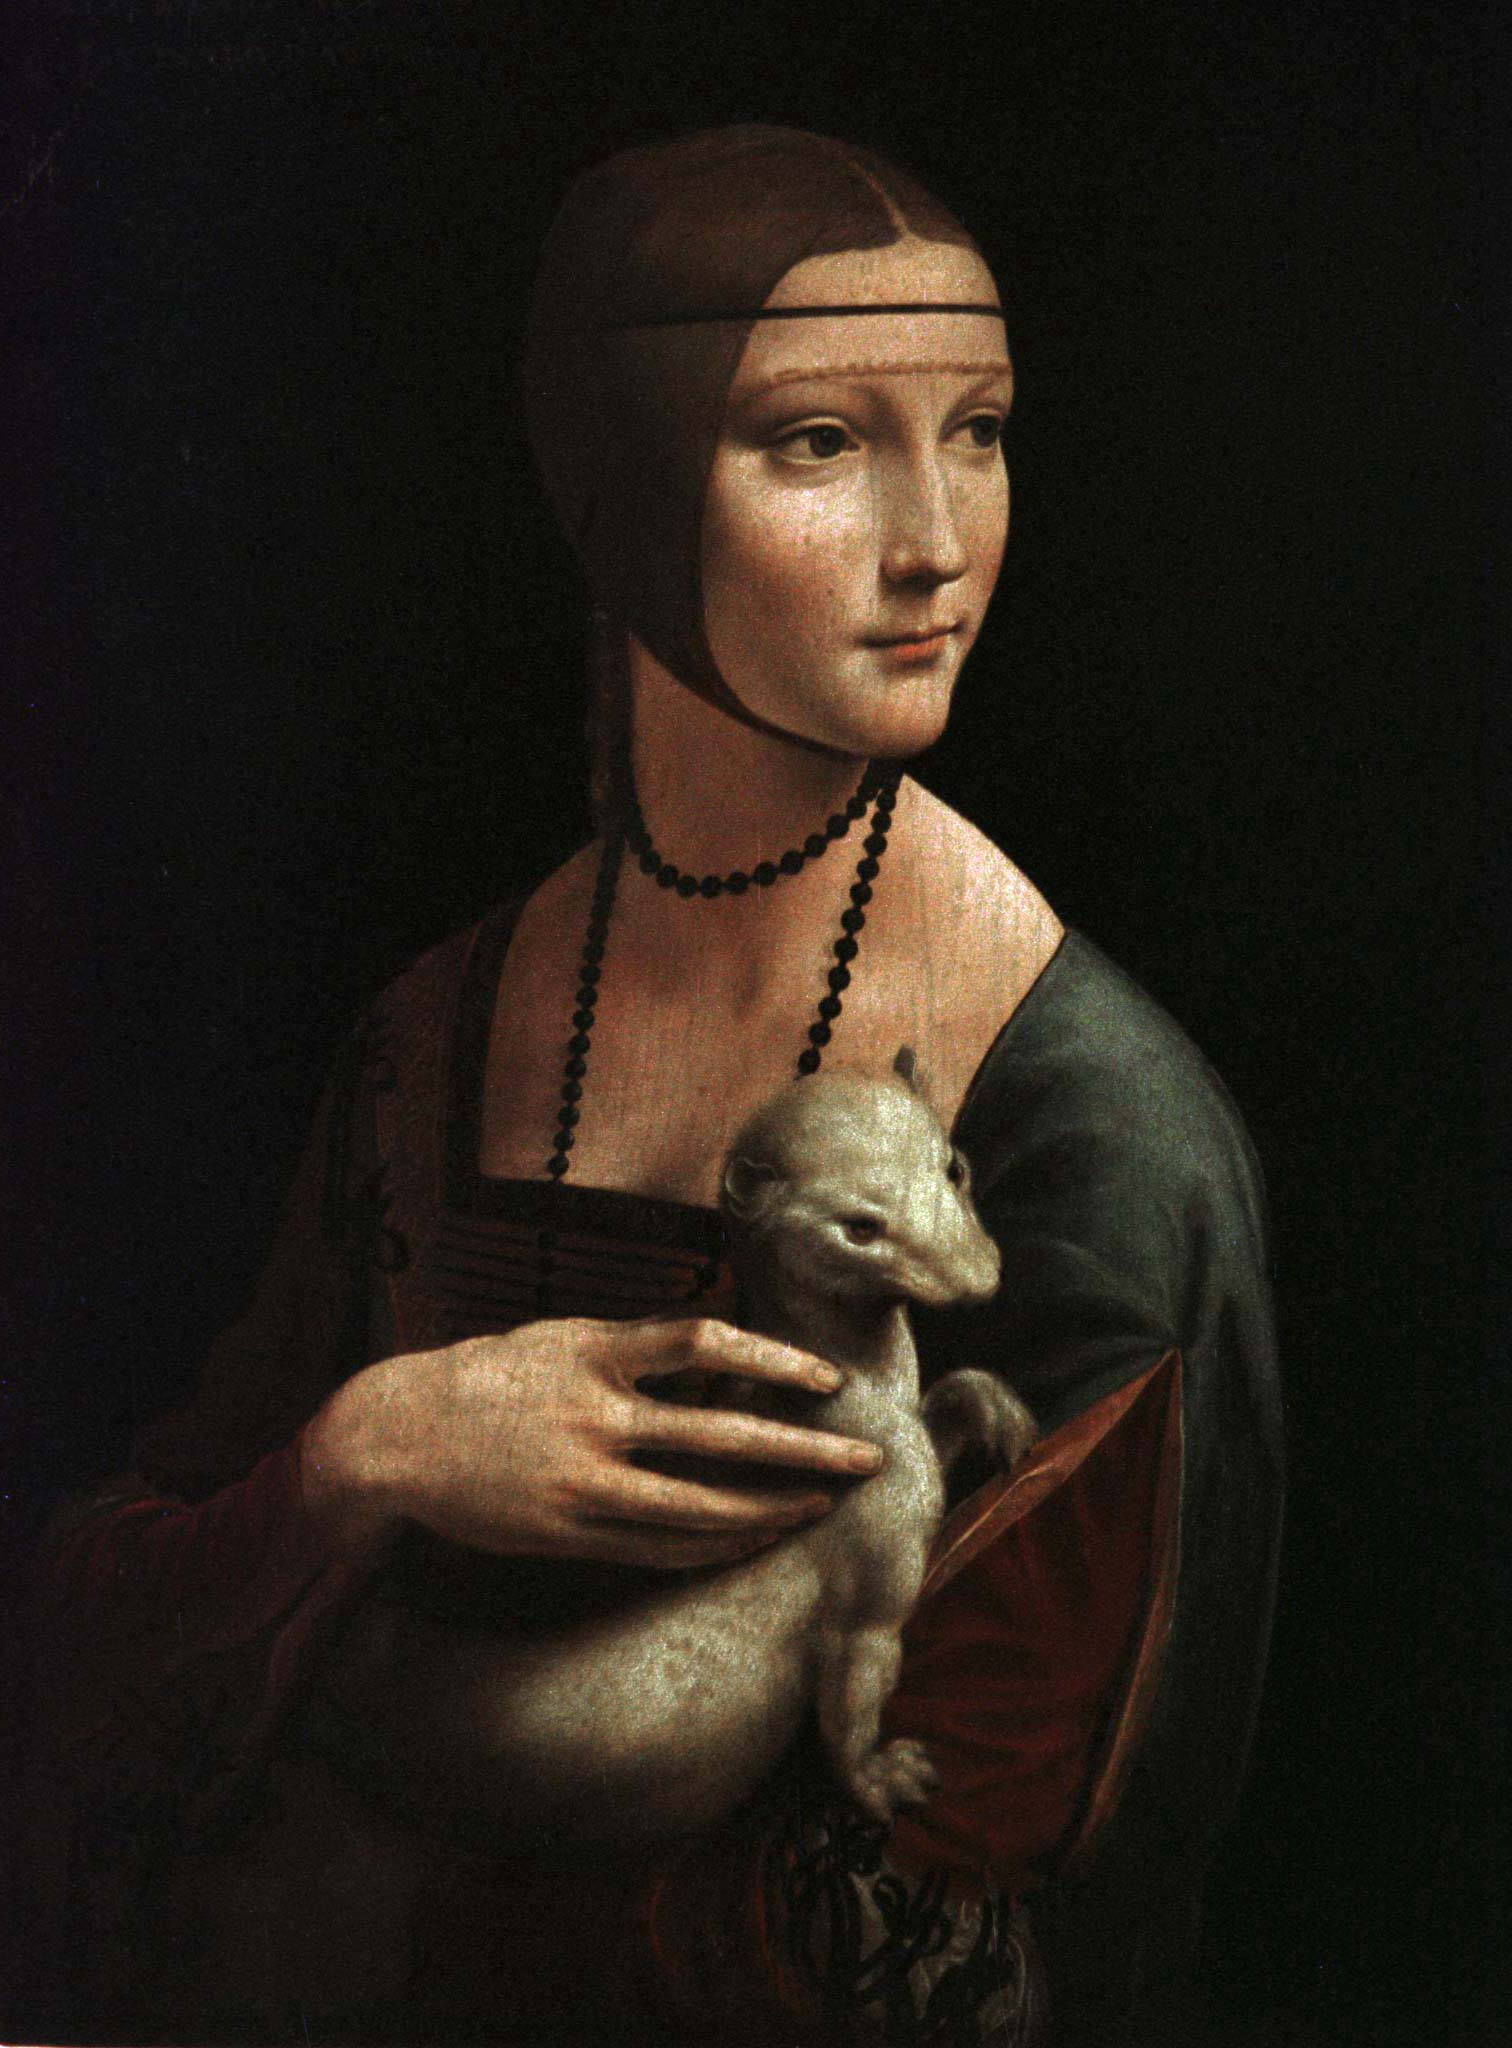 The Lady with Ermine by Leonardo Da Vinci  photographed on Nov. 18, 1998.